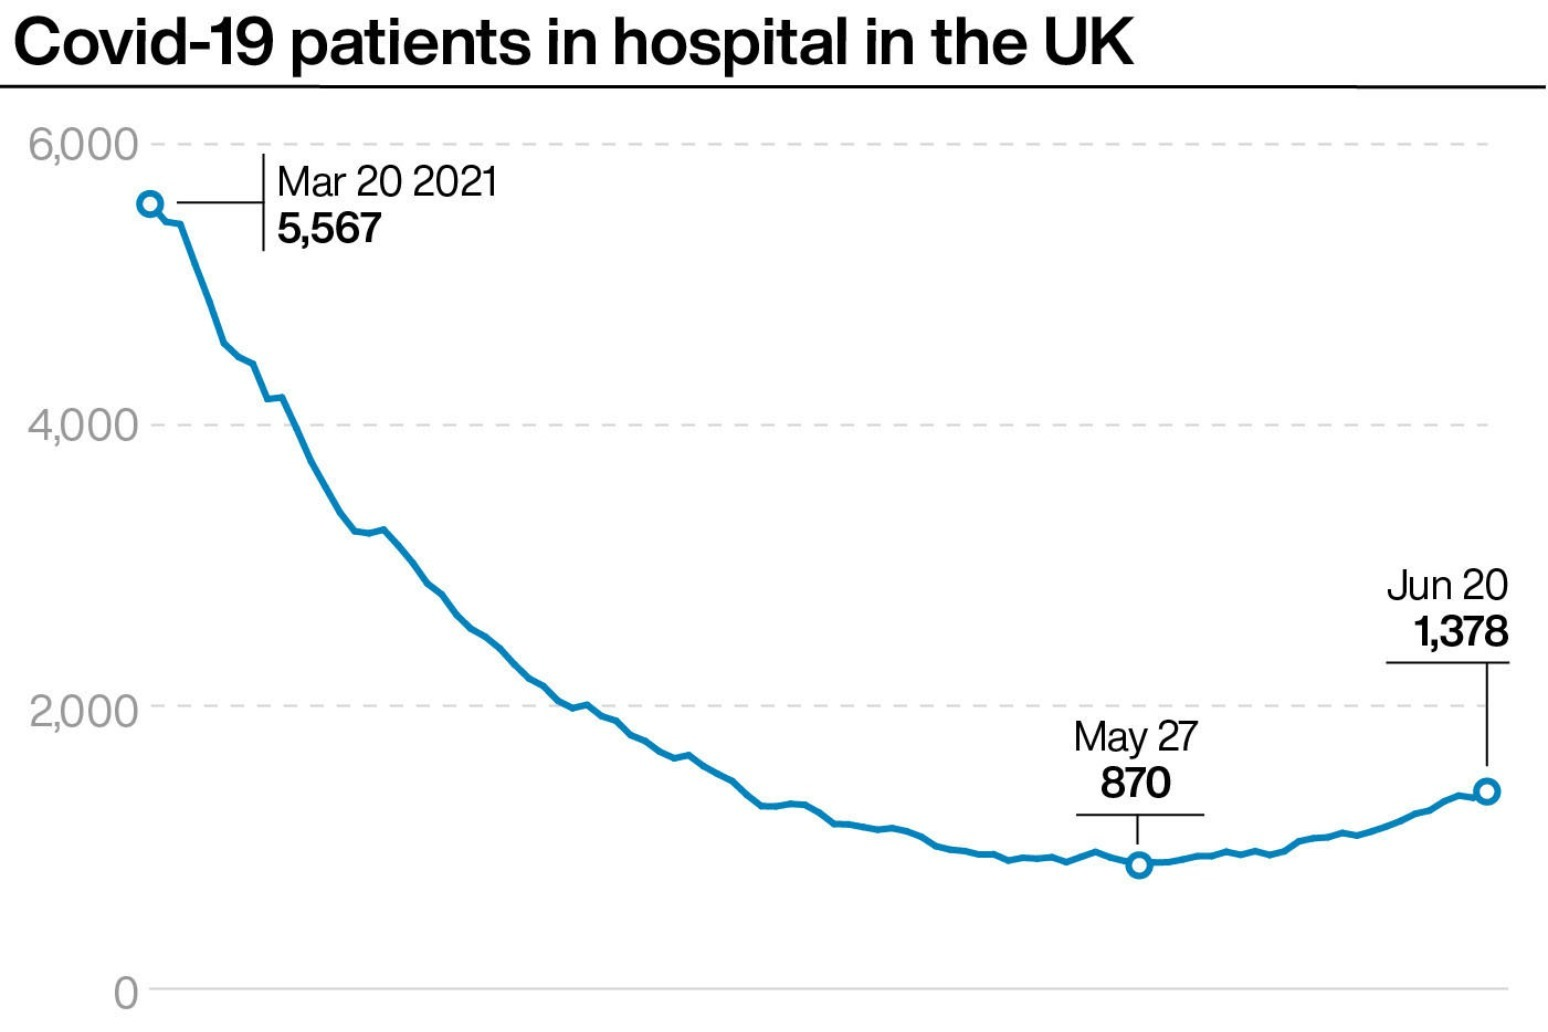 Number of Covid-19 hospital patients in UK highest since April